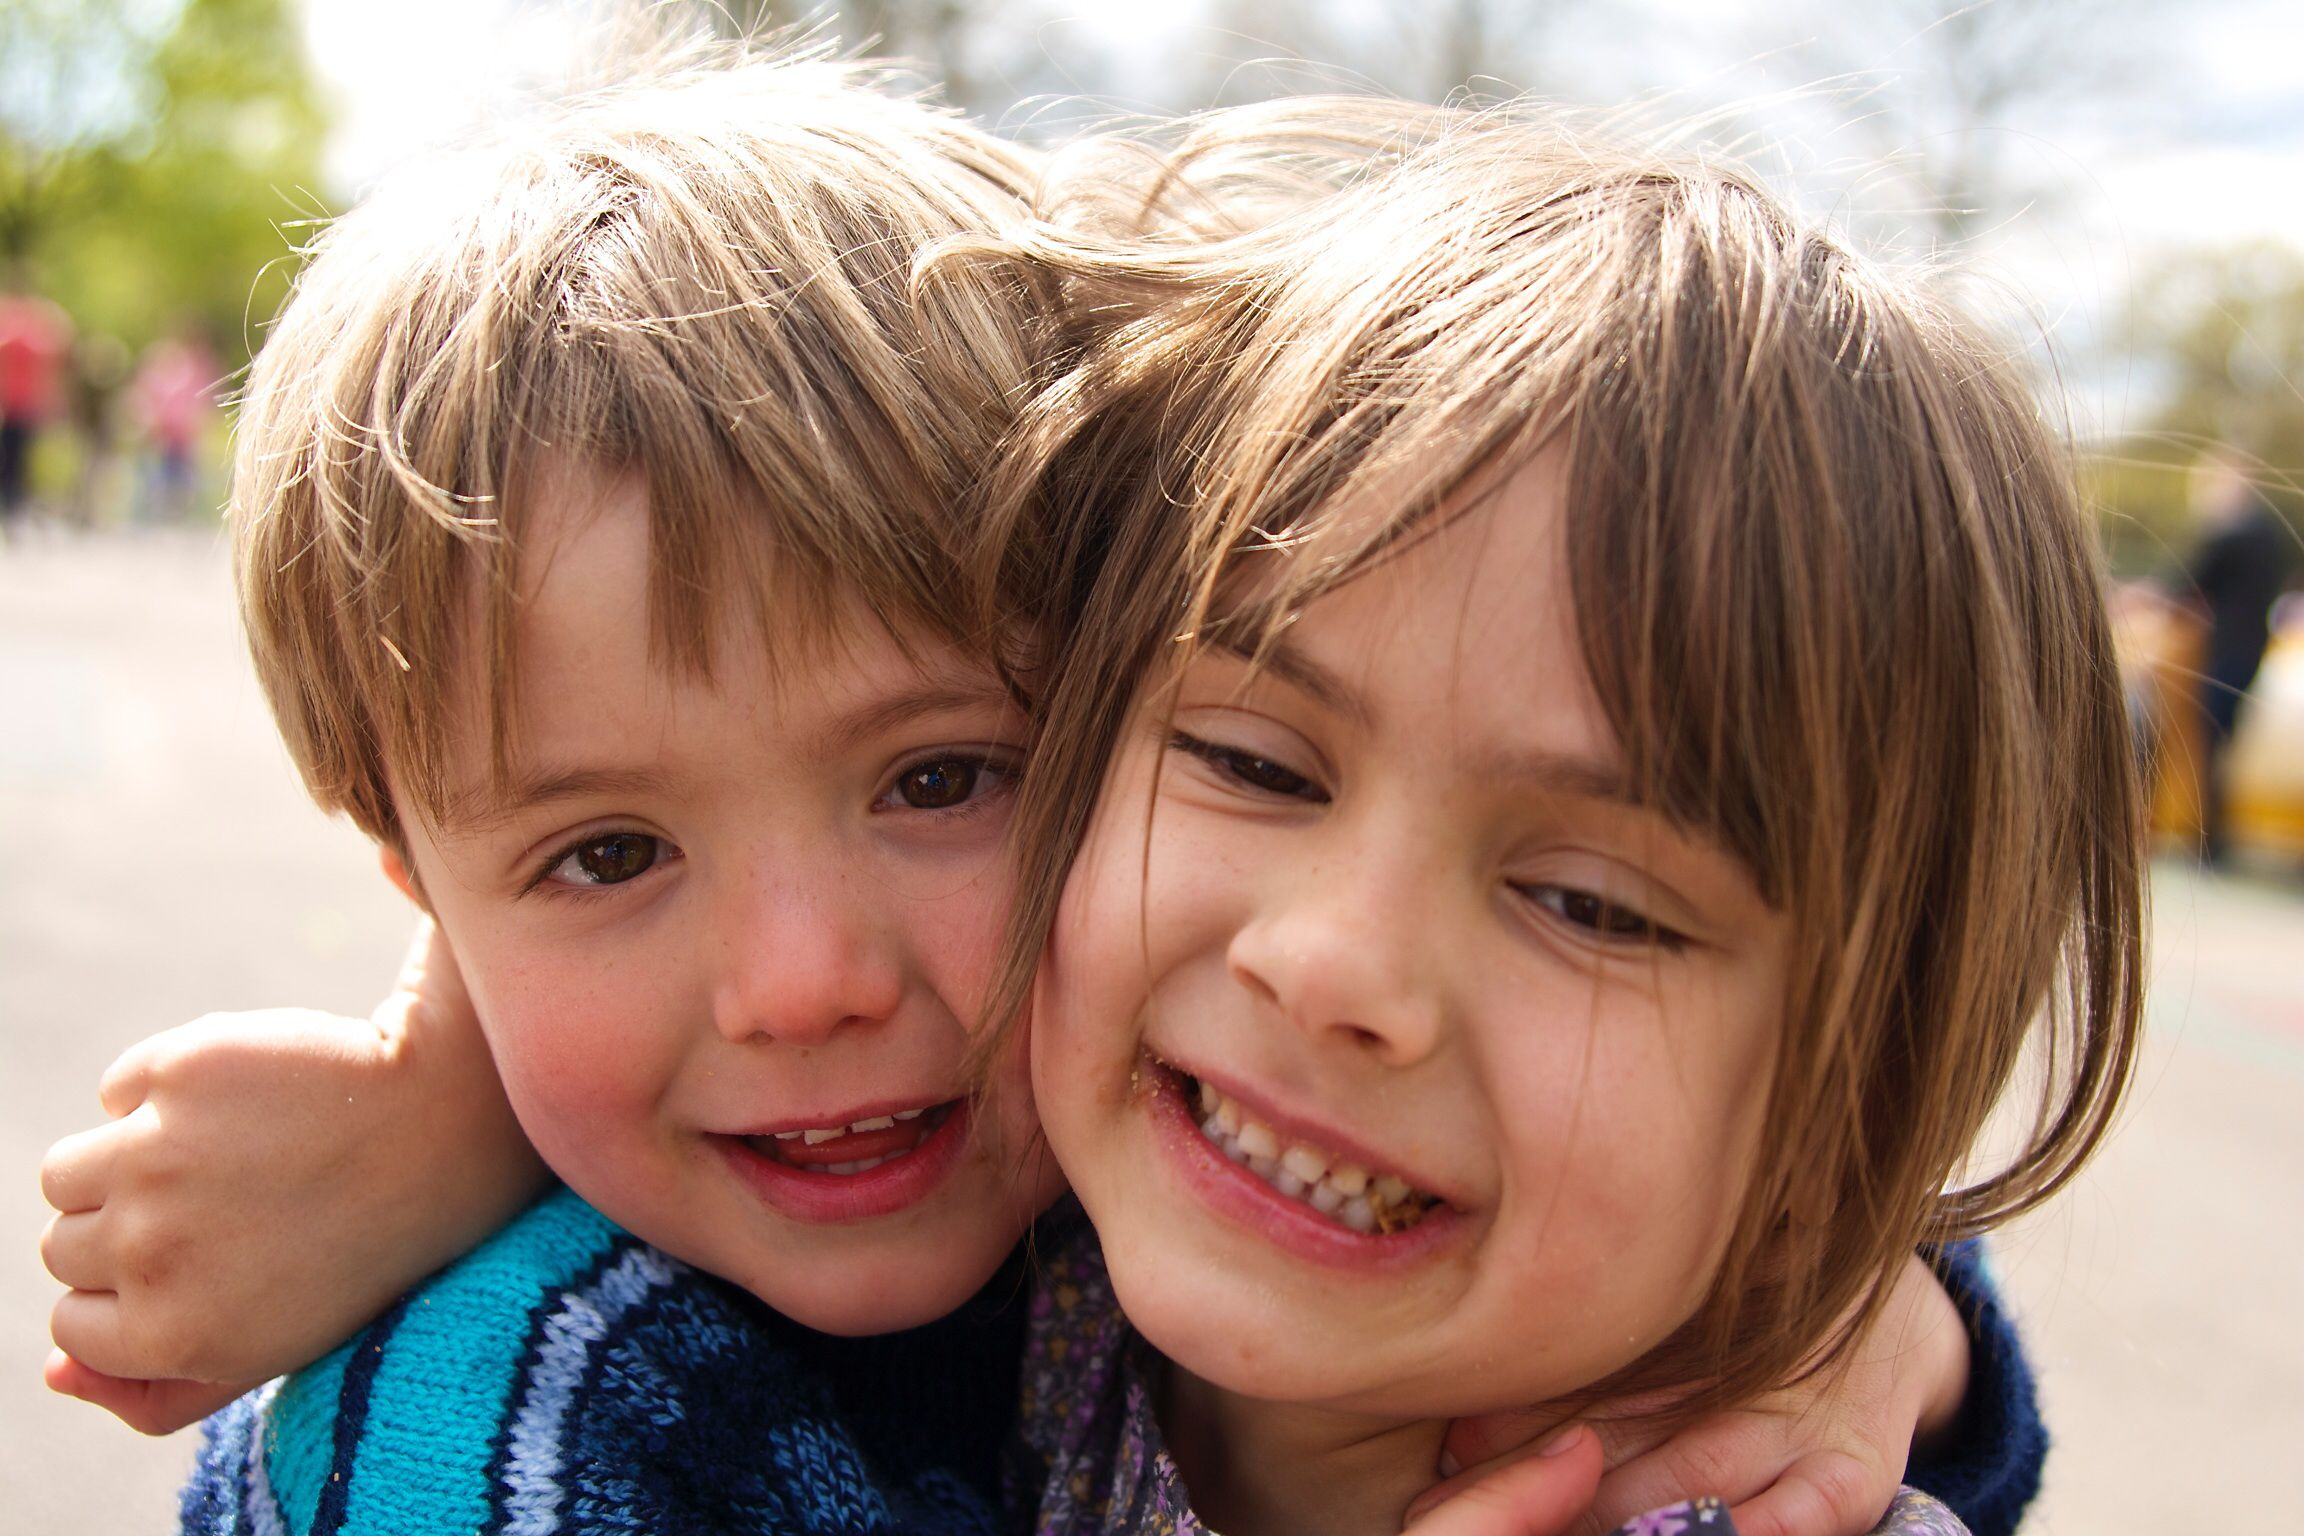 Lovely Pic Really Like This One Of Them Shot With Canon Eos 1000d With Sigma 24 70mm F2 8 Ex Dg Hsm Photographing Kids Baby Face Canon Eos